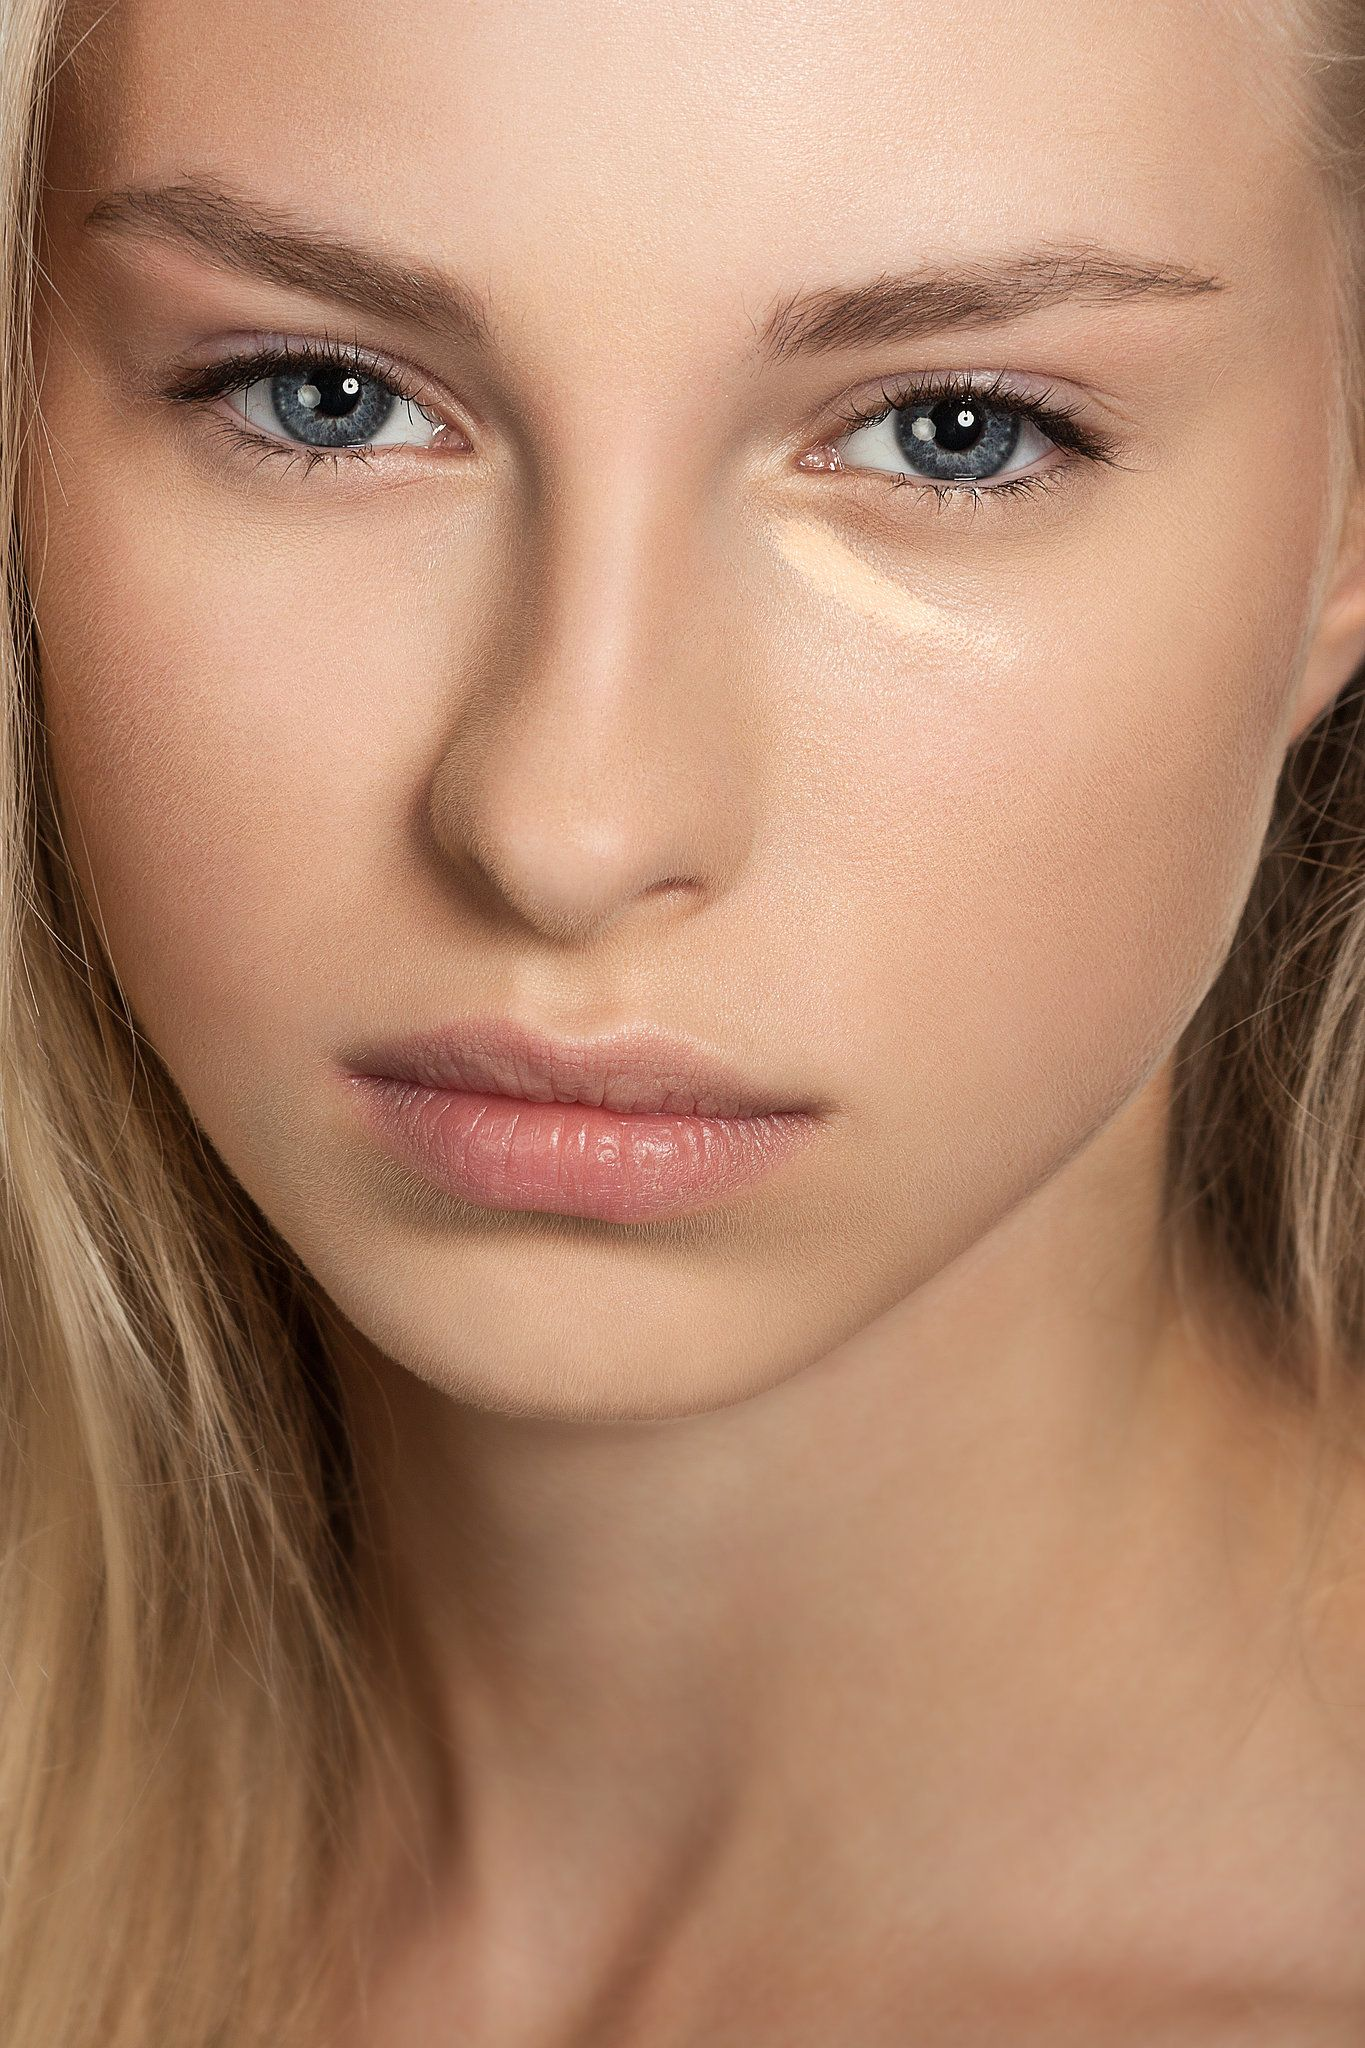 20 Beauty Mistakes That You Didn't Realize You Were Making